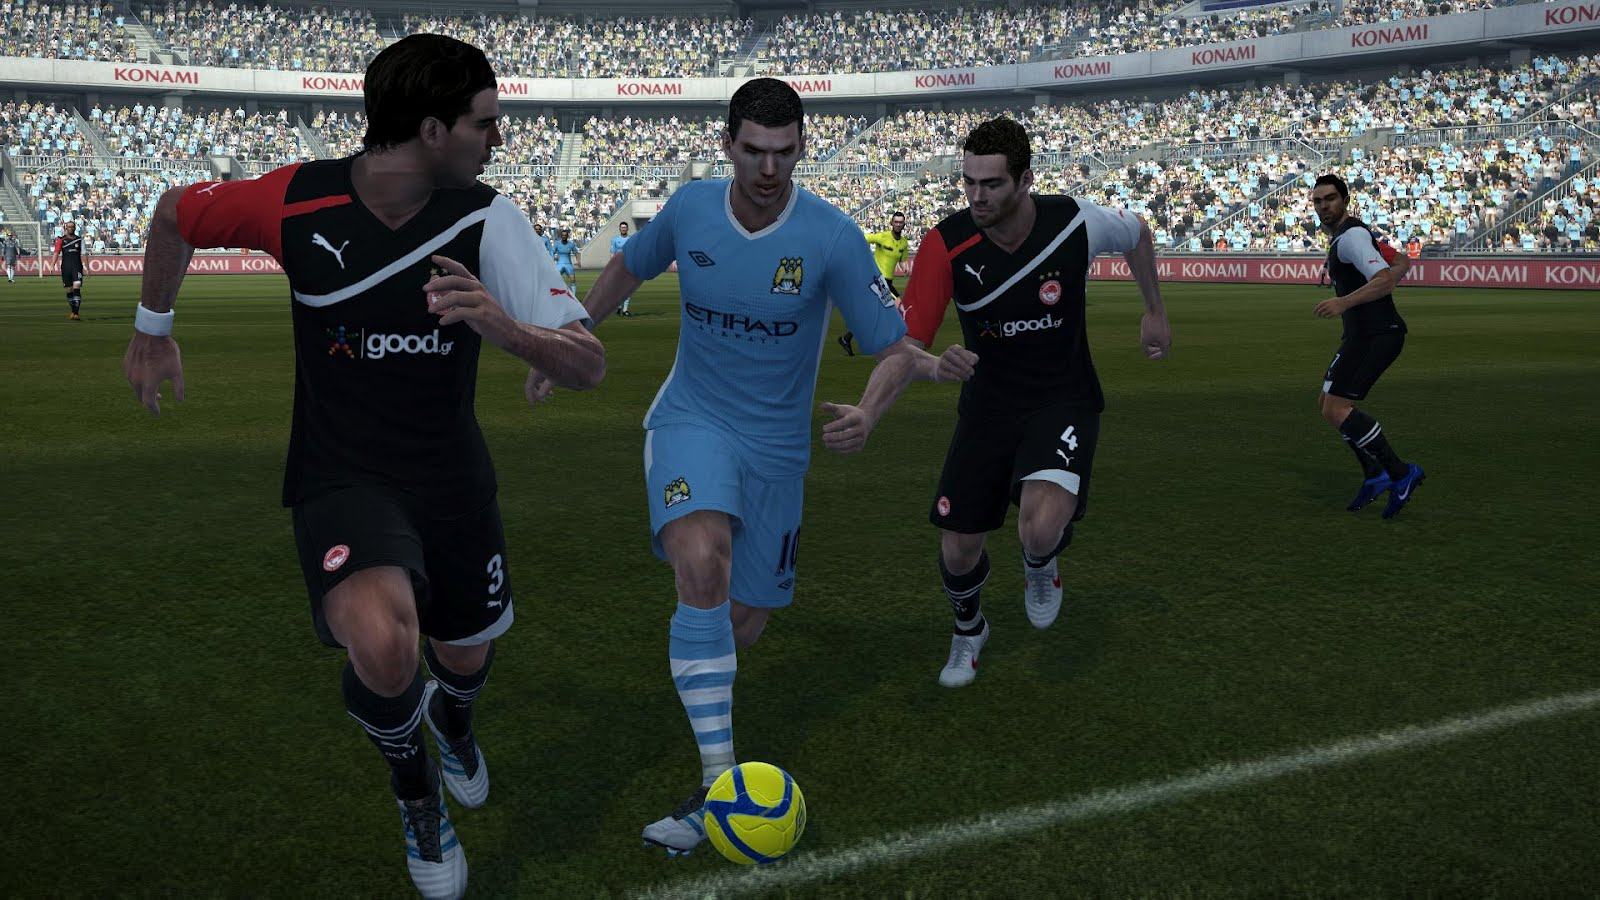 pes20122B2012 02 042B11 36 47 15 - PES 2012 FULL + PESEDIT Patch 2.8 (NEW) MEDIAFIRE